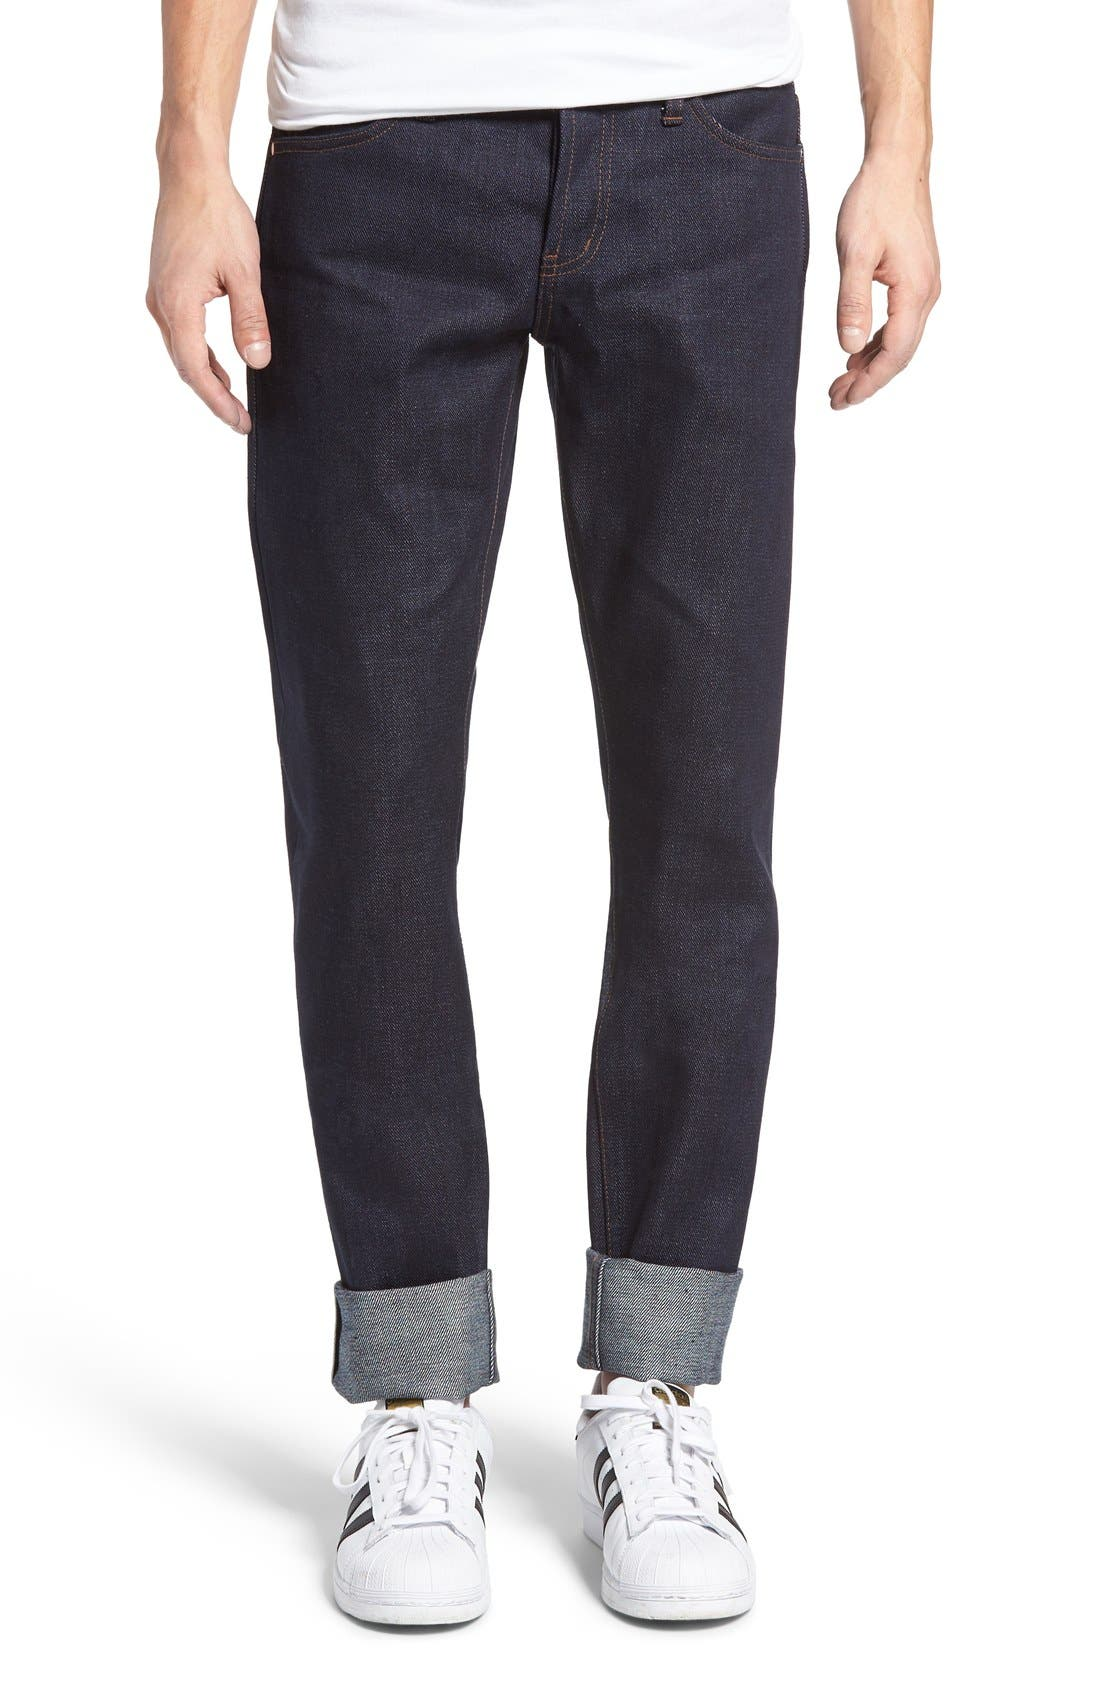 UB121 Selvedge Skinny Fit Jeans,                         Main,                         color, 401